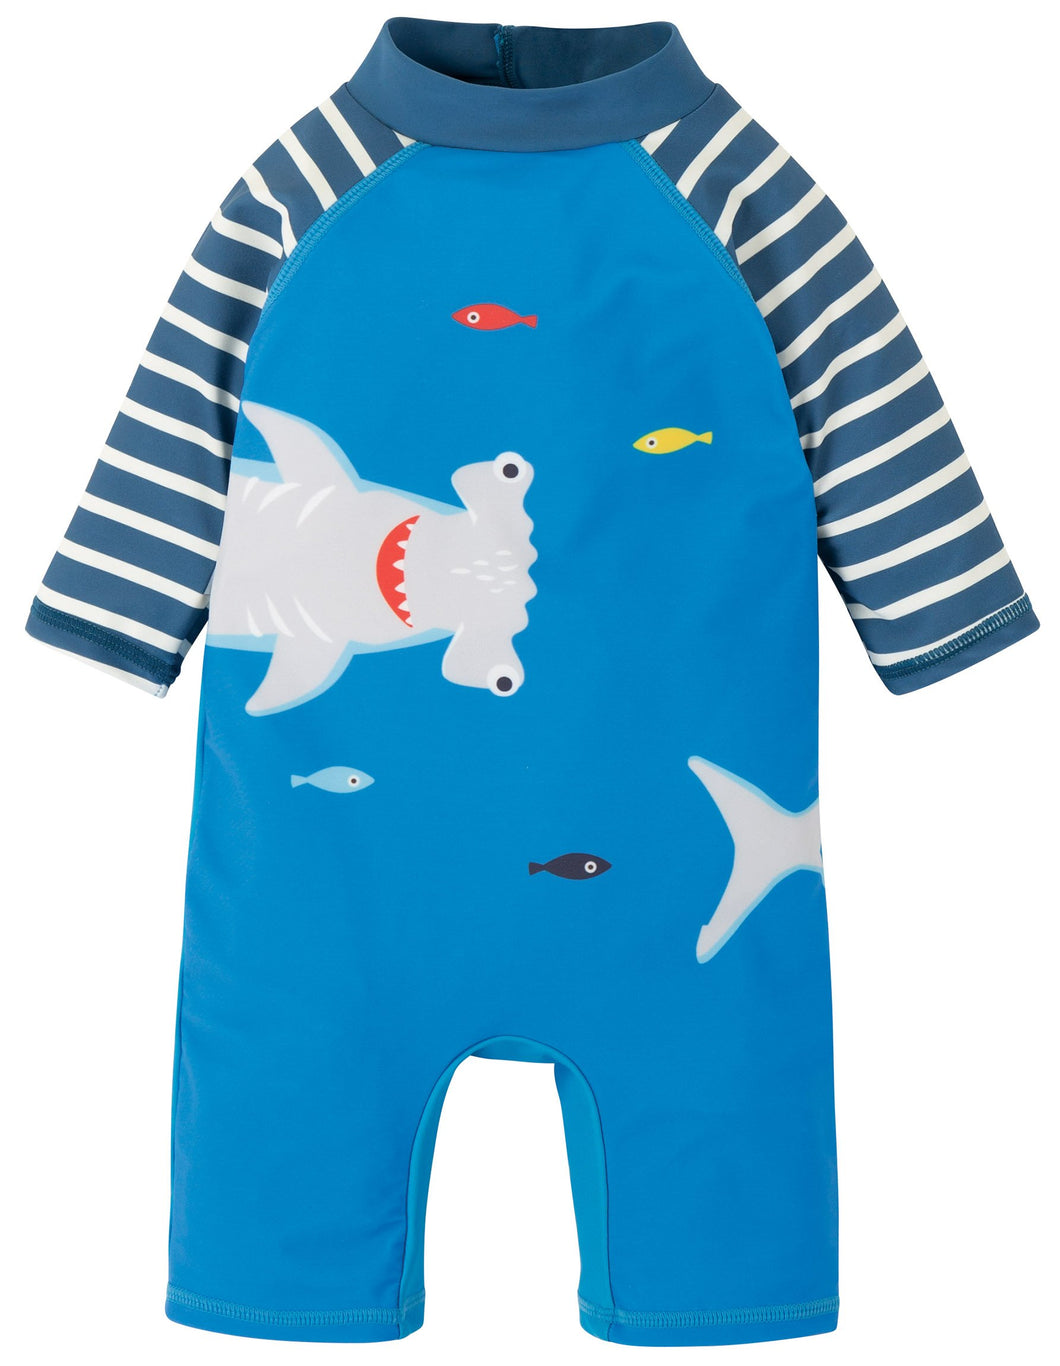 Frugi Little Sunsafe Suit Motosu Blue/Shark